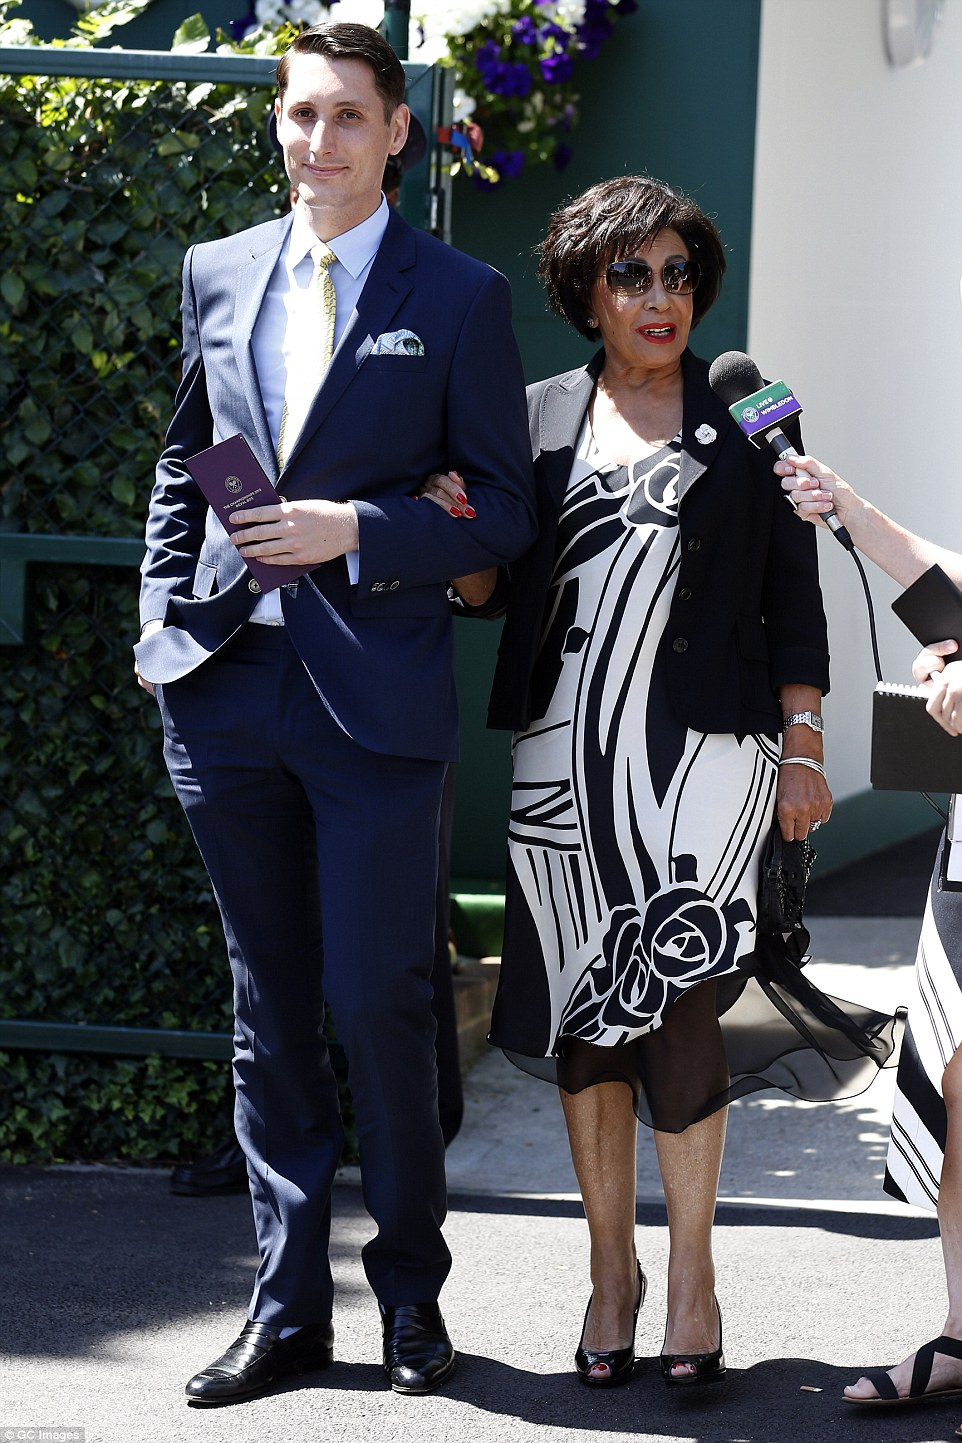 Singing sensation:Dame Shirley Bassey was seen getting escourted to the All England Lawn Tennis Championships